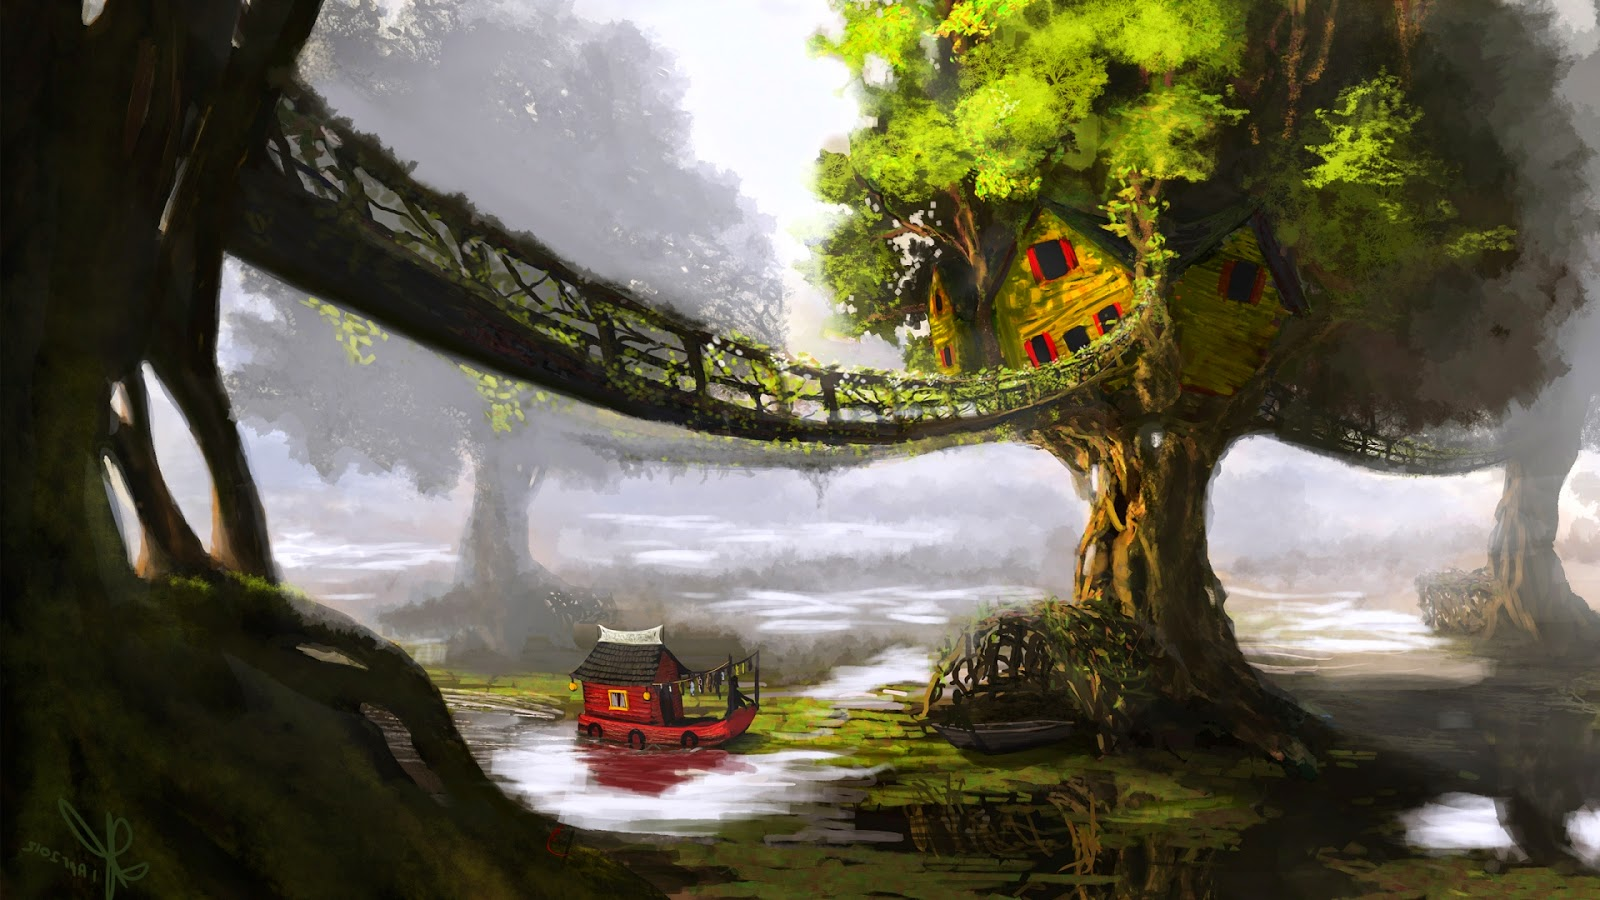 Cute Small Girl Wallpapers For Facebook Beautiful Tree House Fantasy Fairy Tale Images Pictures Hd